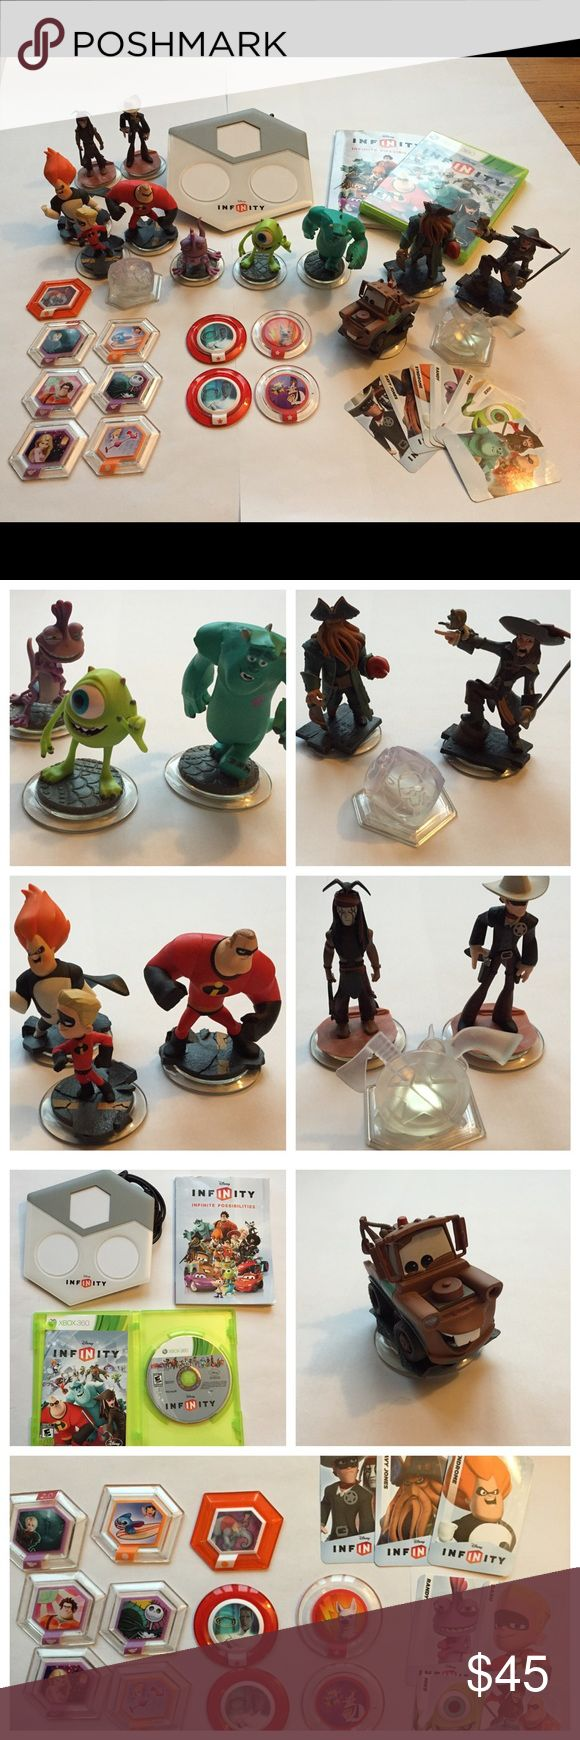 Disney Infinity XBox 360 Lot Original Disney Infinity Lot XBOX 360. Great shape hardly ever played.  -platform -game disc -character info book -10 discs -13 character figures Disney Other